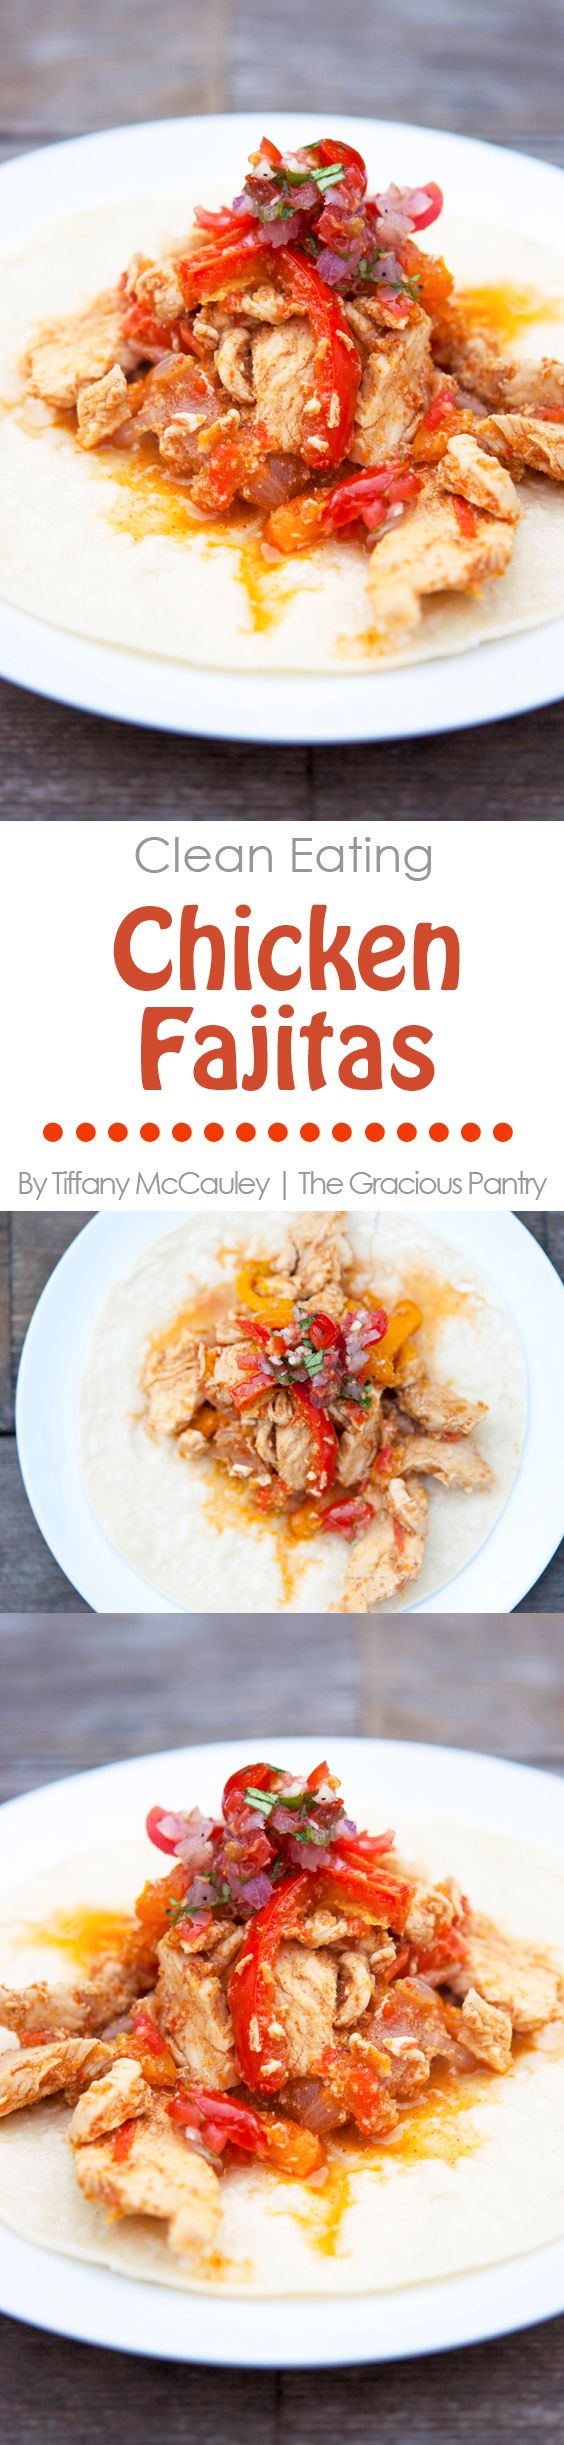 99 best clean eating game day recipes images on pinterest eating clean eating fajitas forumfinder Choice Image